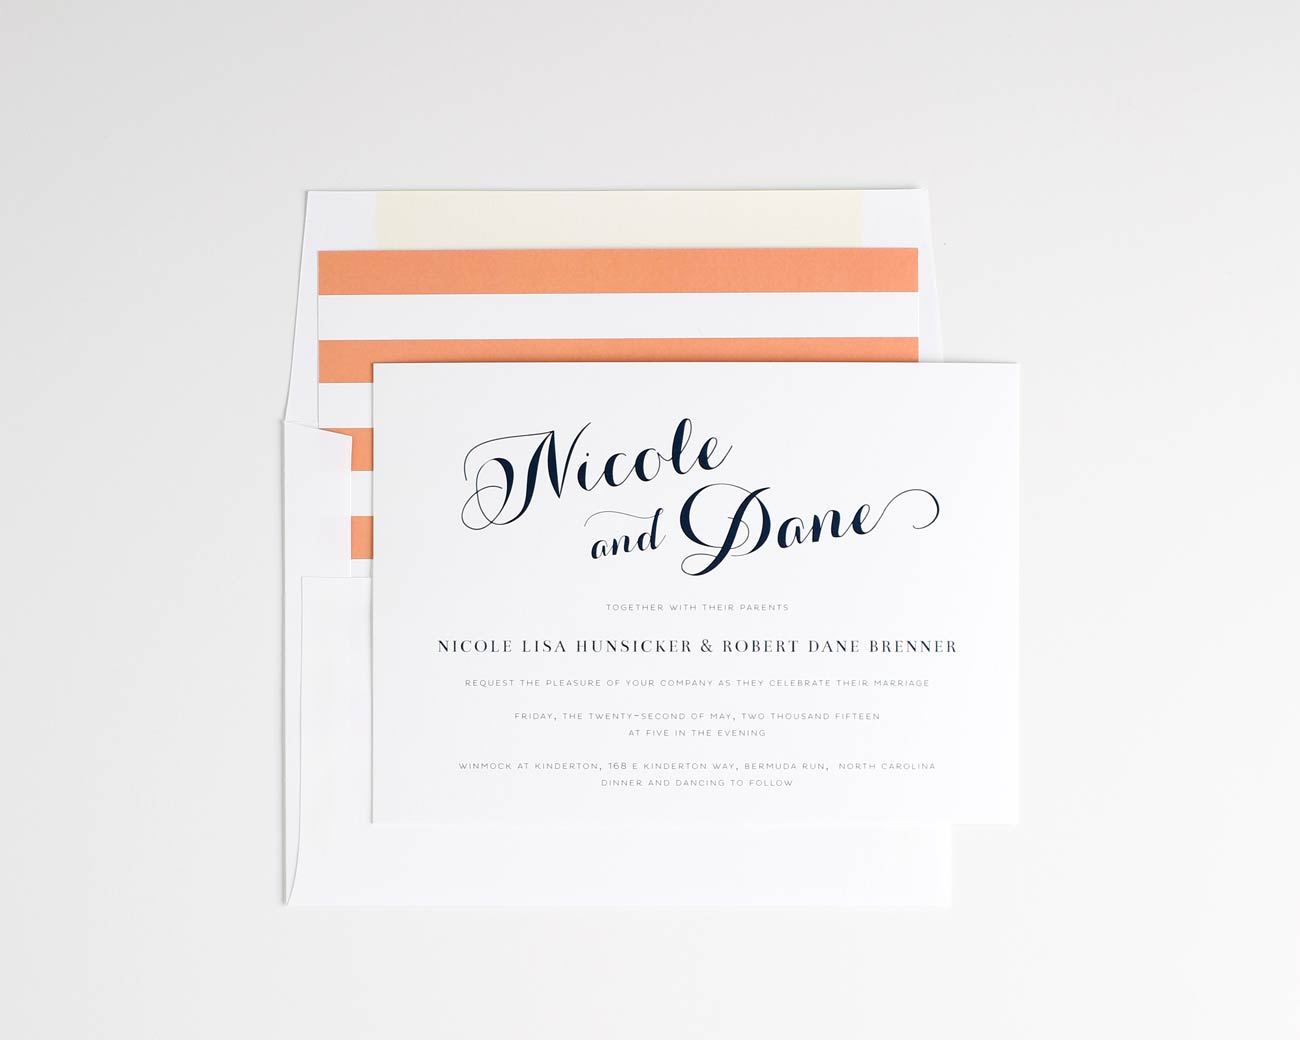 Script wedding invitations in peach